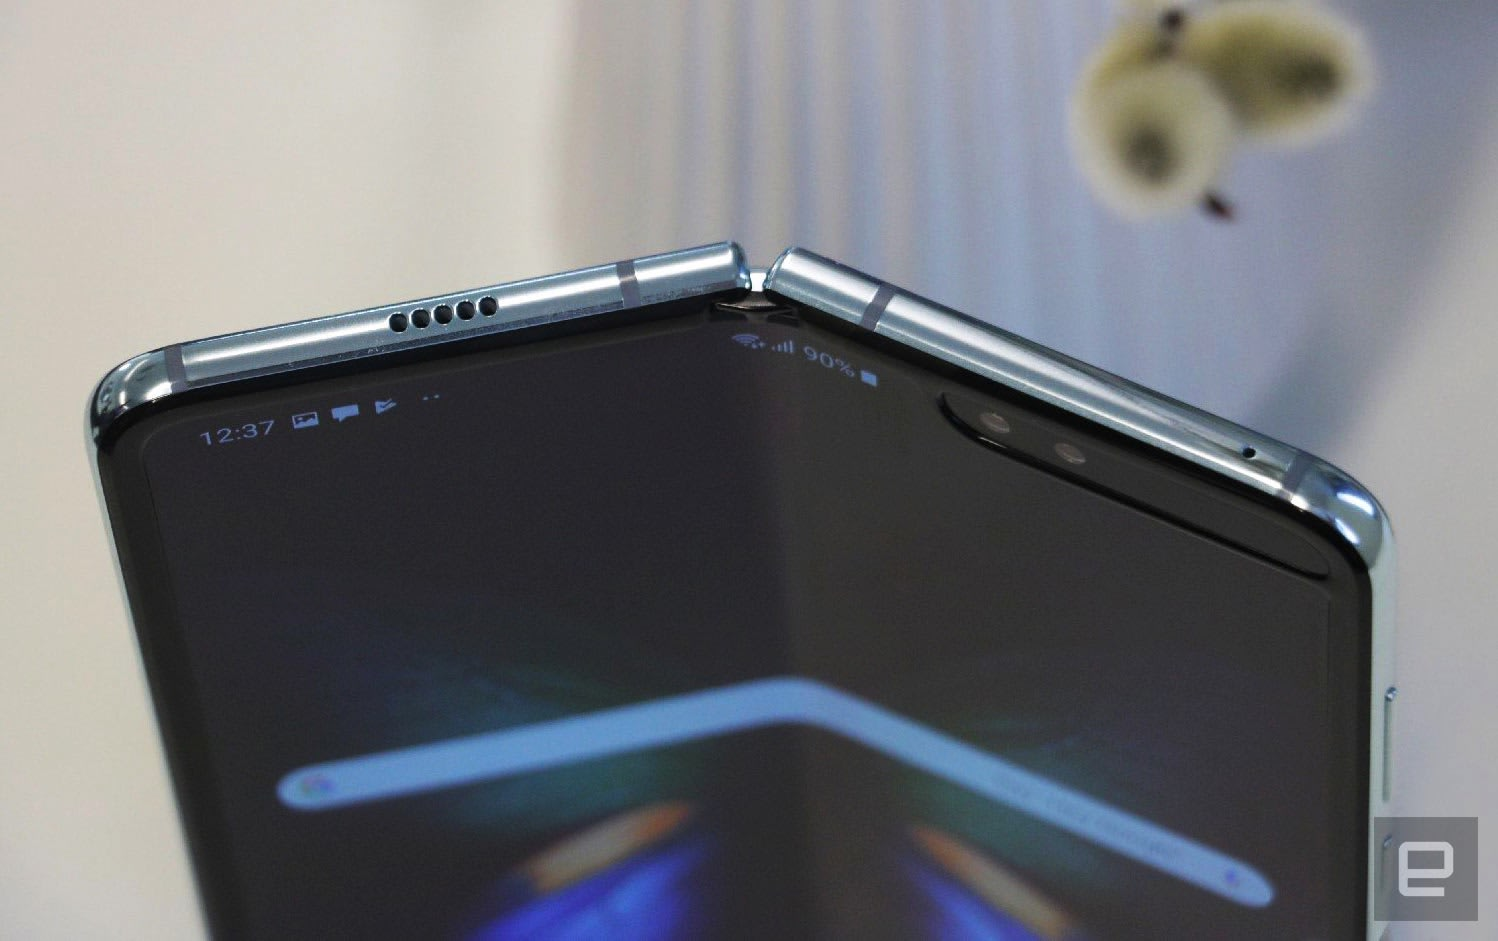 Samsung cancels Galaxy Fold pre-orders to 'rethink' the experience